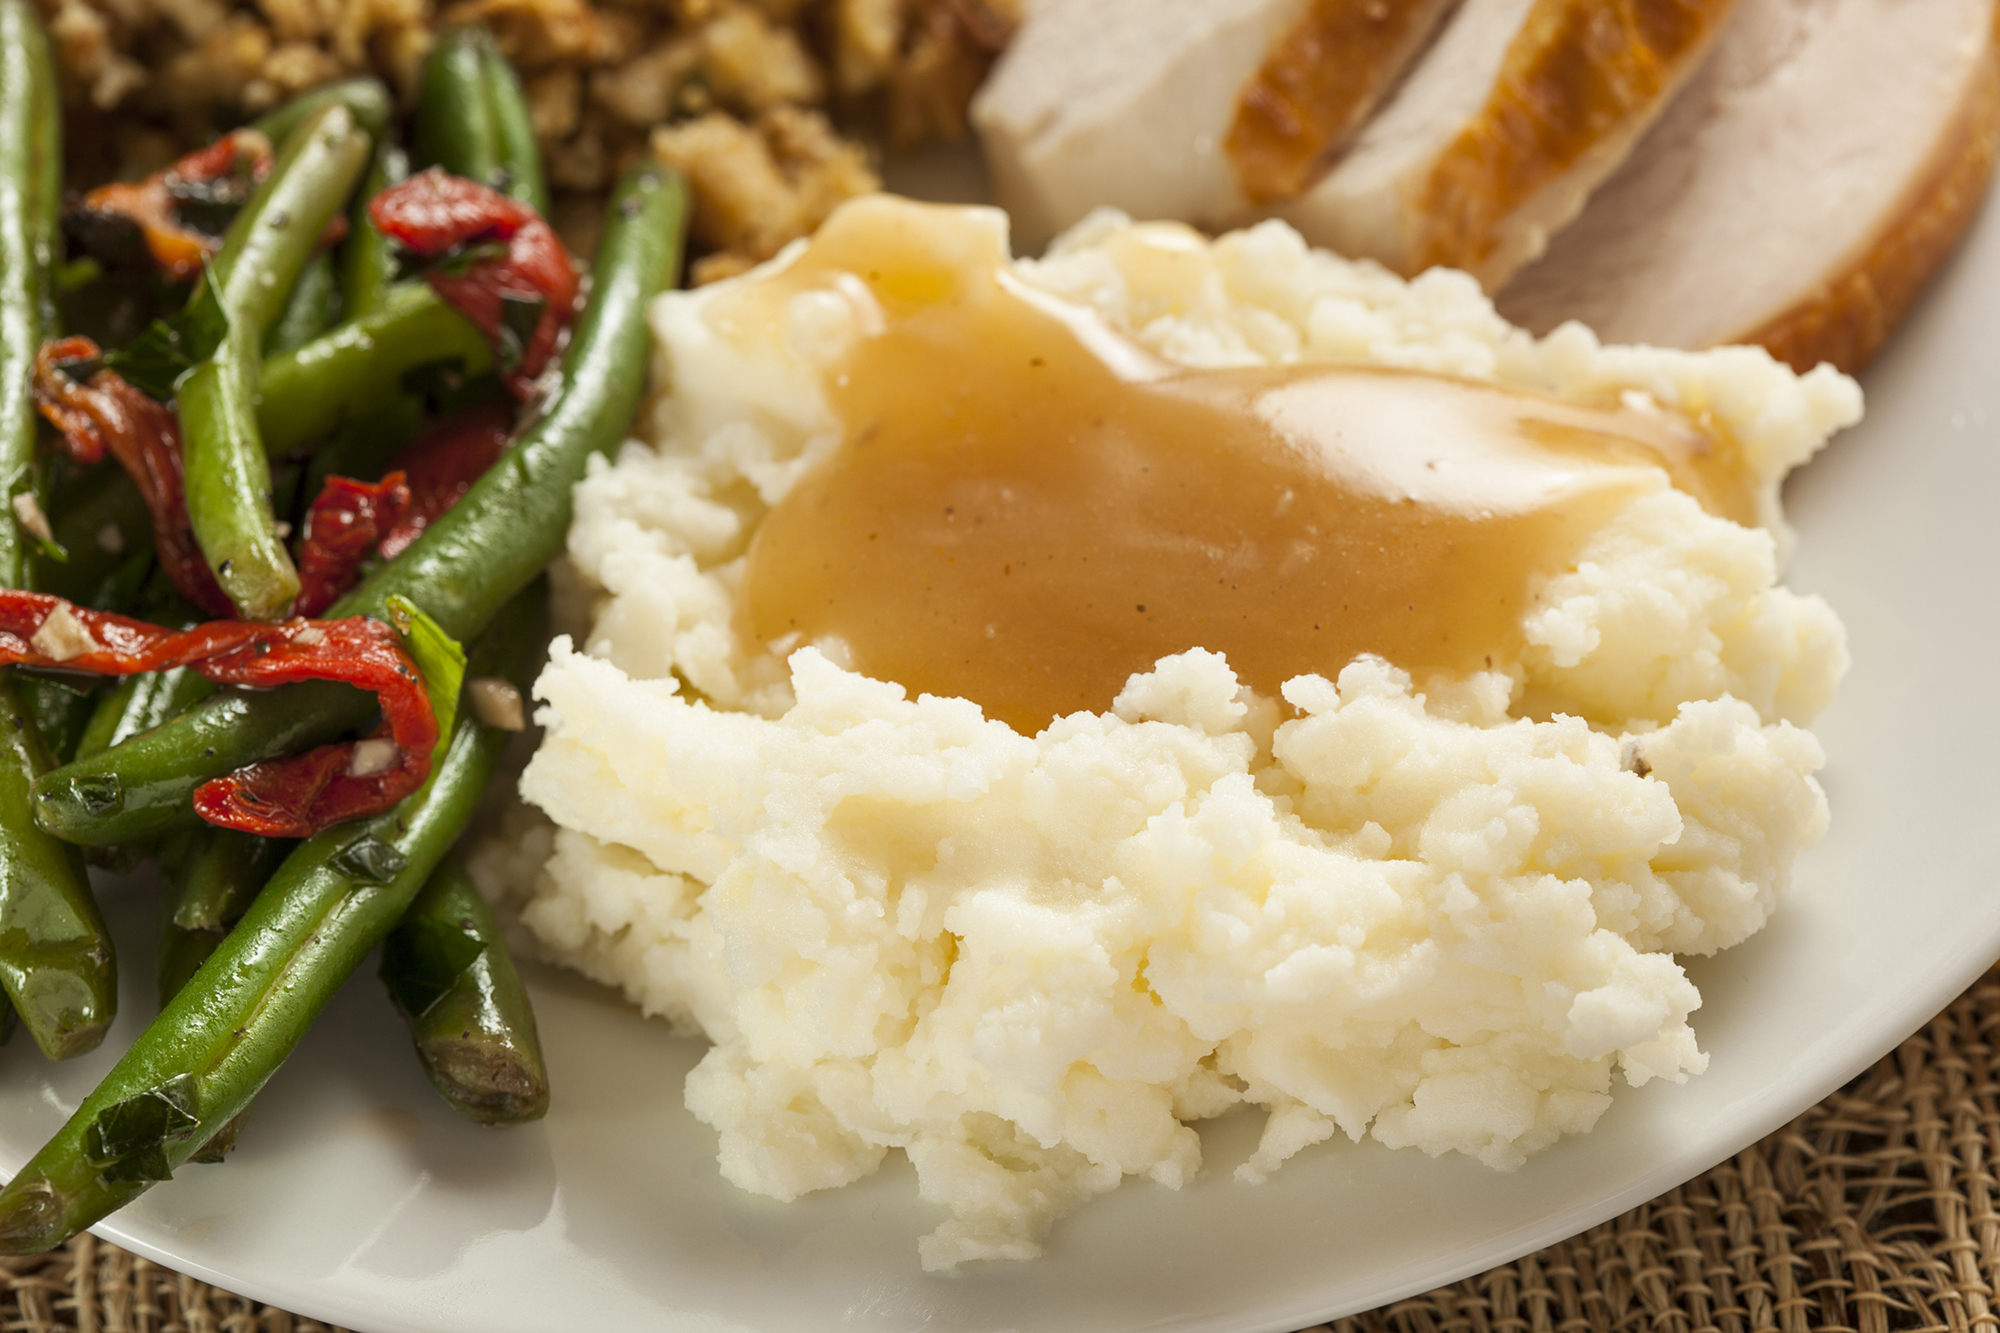 Mashed potatoes with gravy for Thanksgiving. (bhofack2/Getty Images)